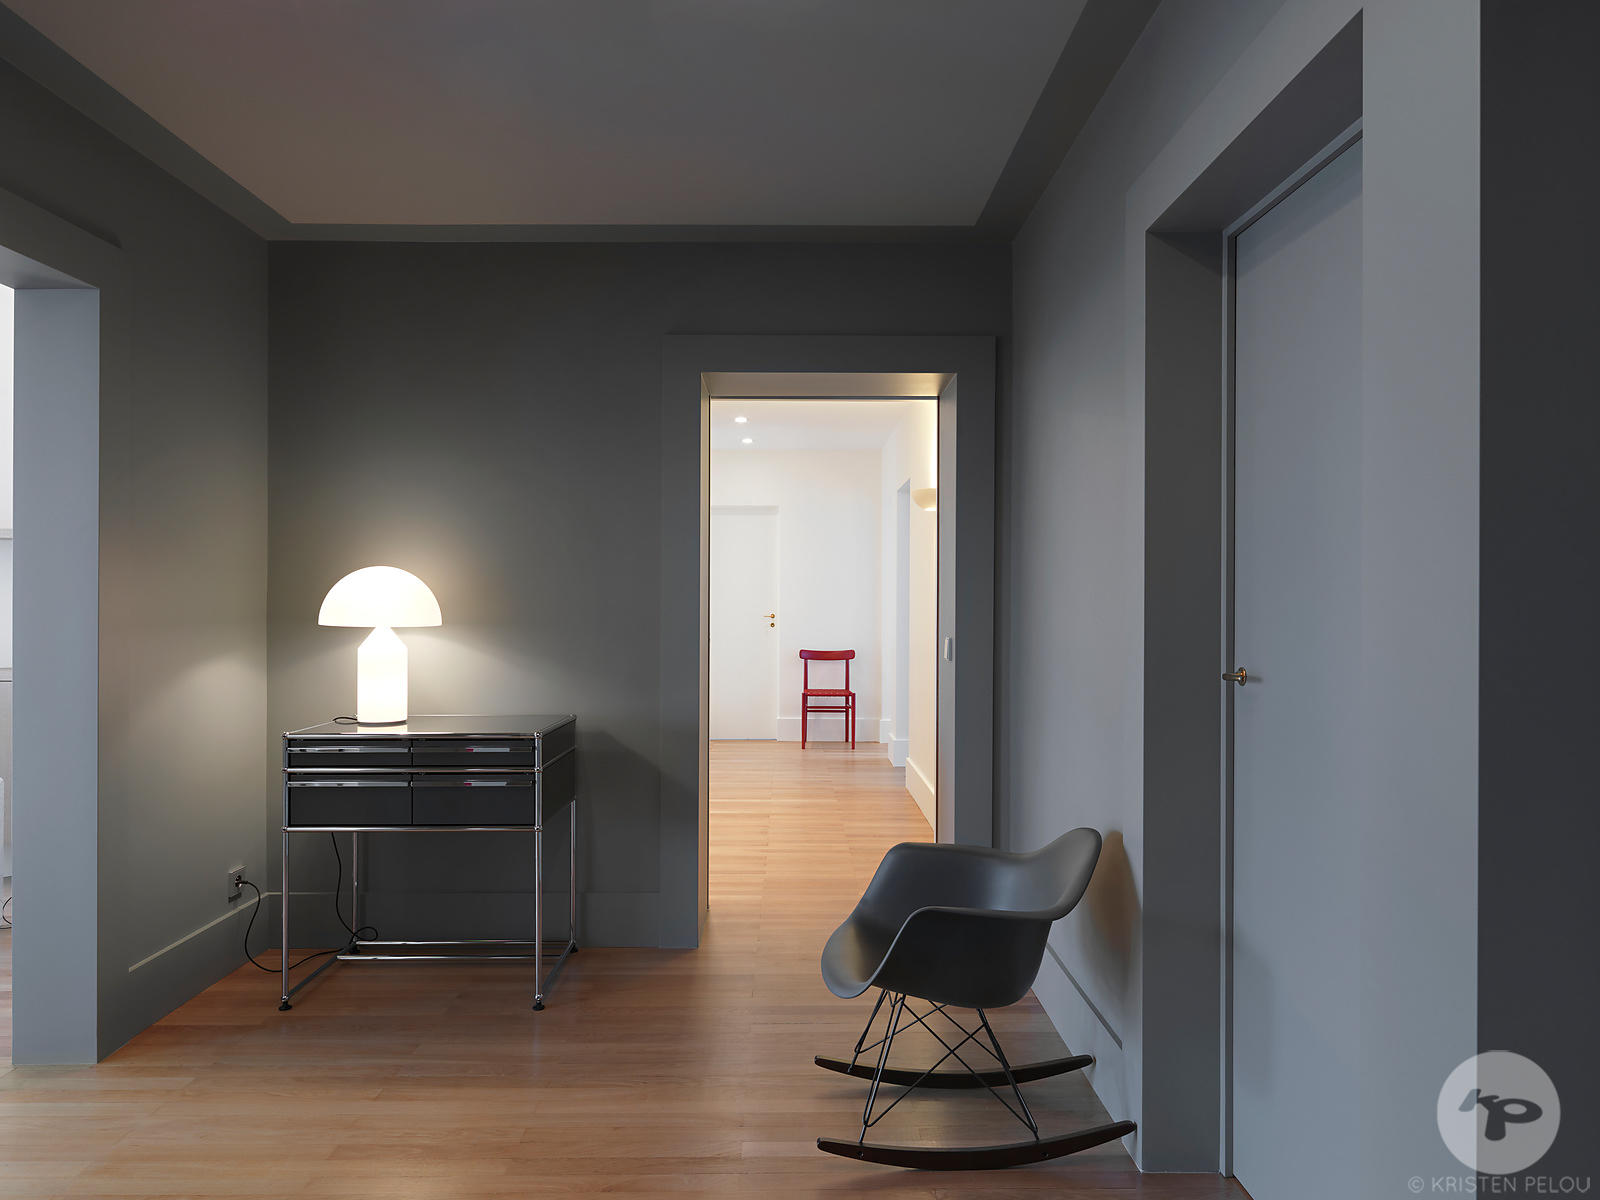 Photographe Architecture Paris - APPARTEMENT PRIVE PARIS. Photo ©Kristen Pelou